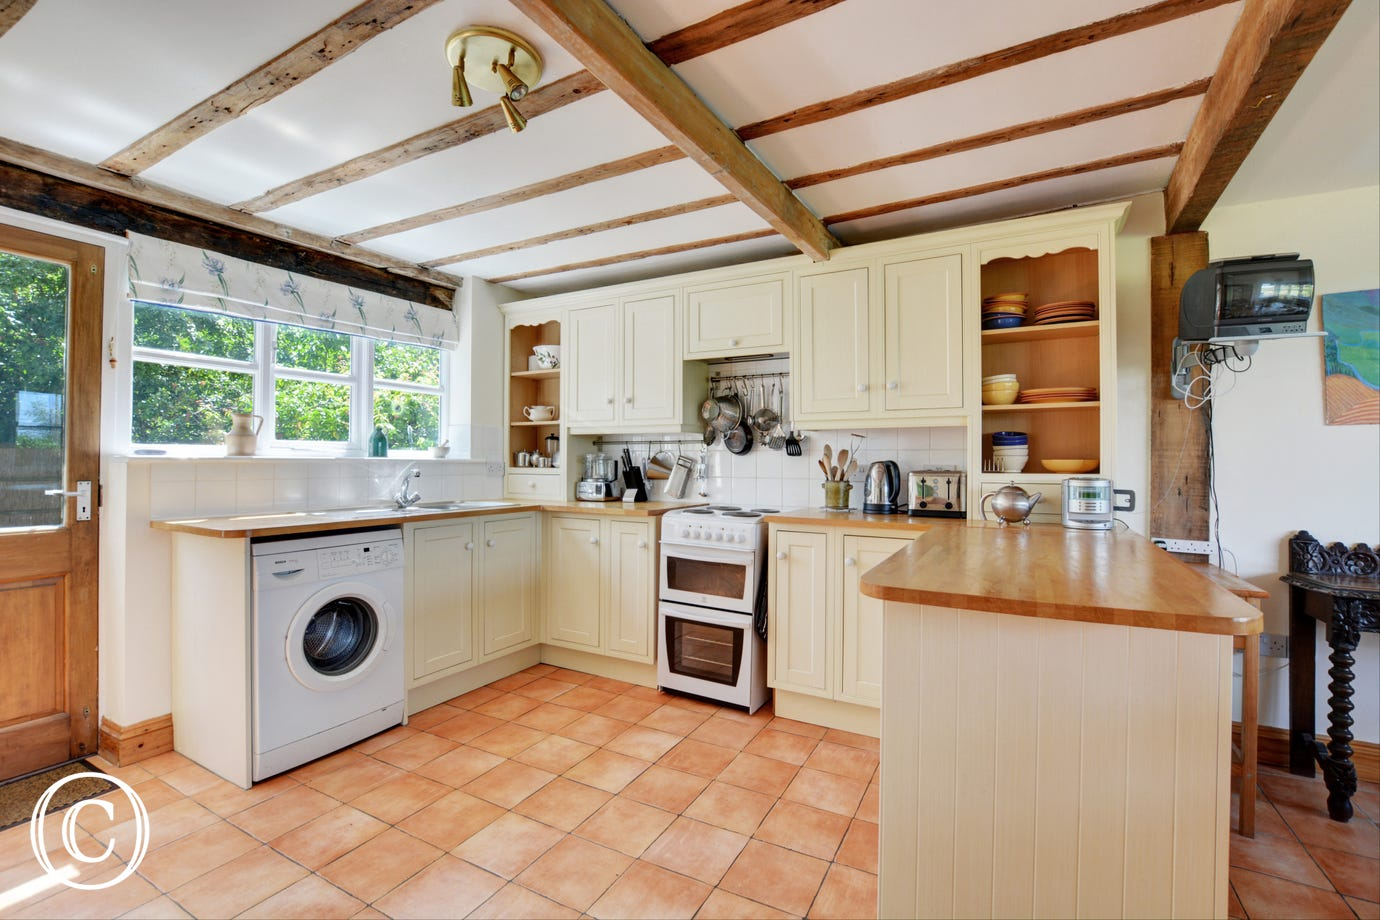 Large, spacious farmhouse kitchen with all the major appliances and very well equipped